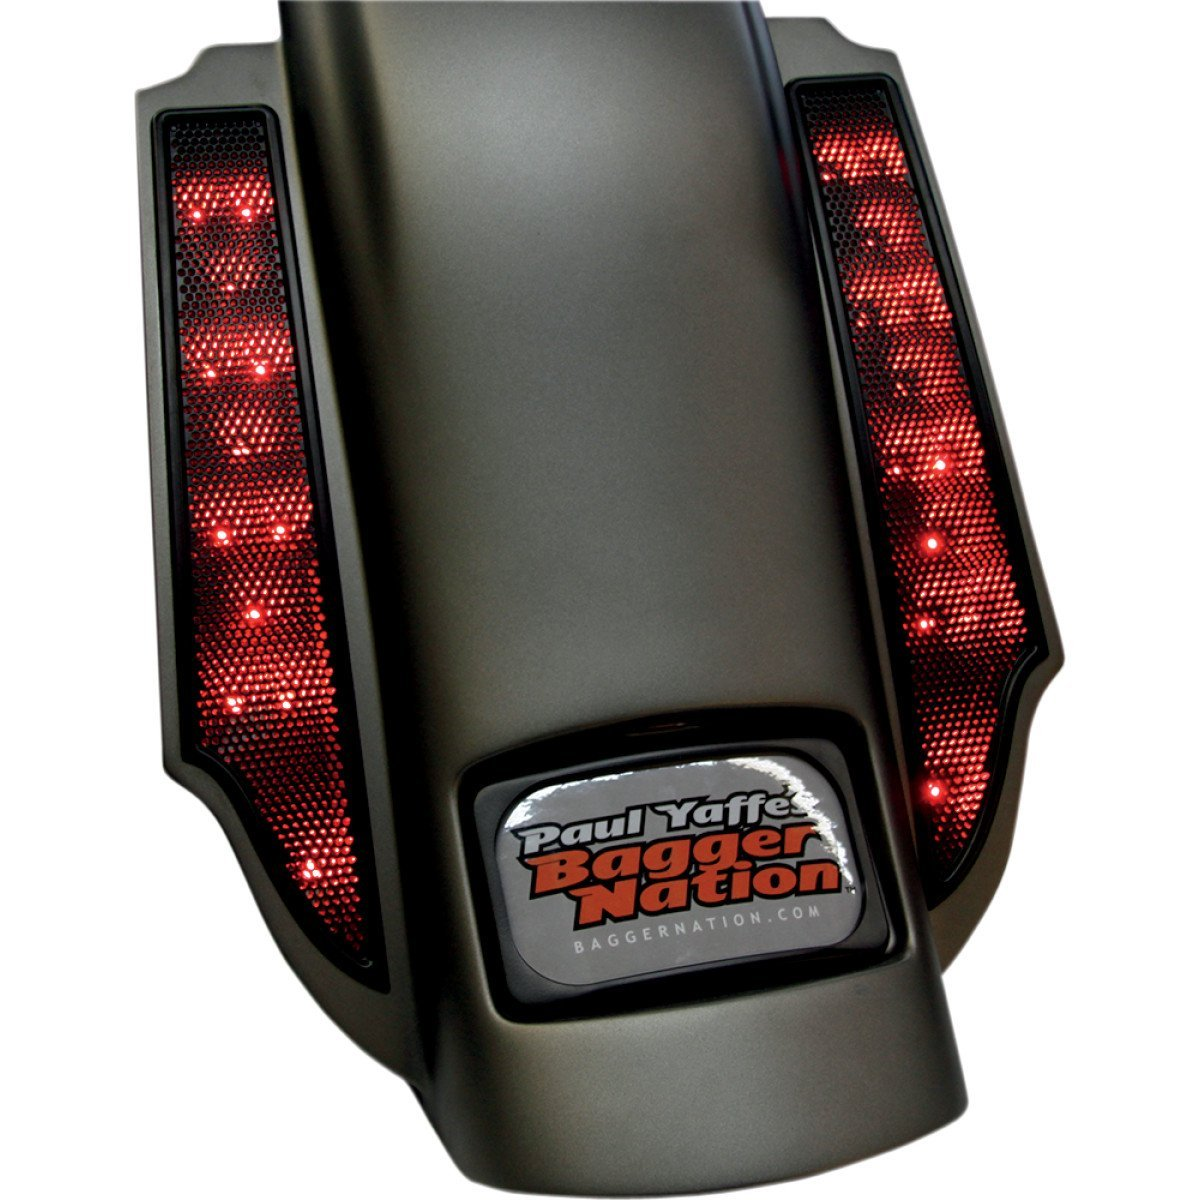 PAUL YAFFE BAGGER NATION Super Bright LED Lights Amber SBY